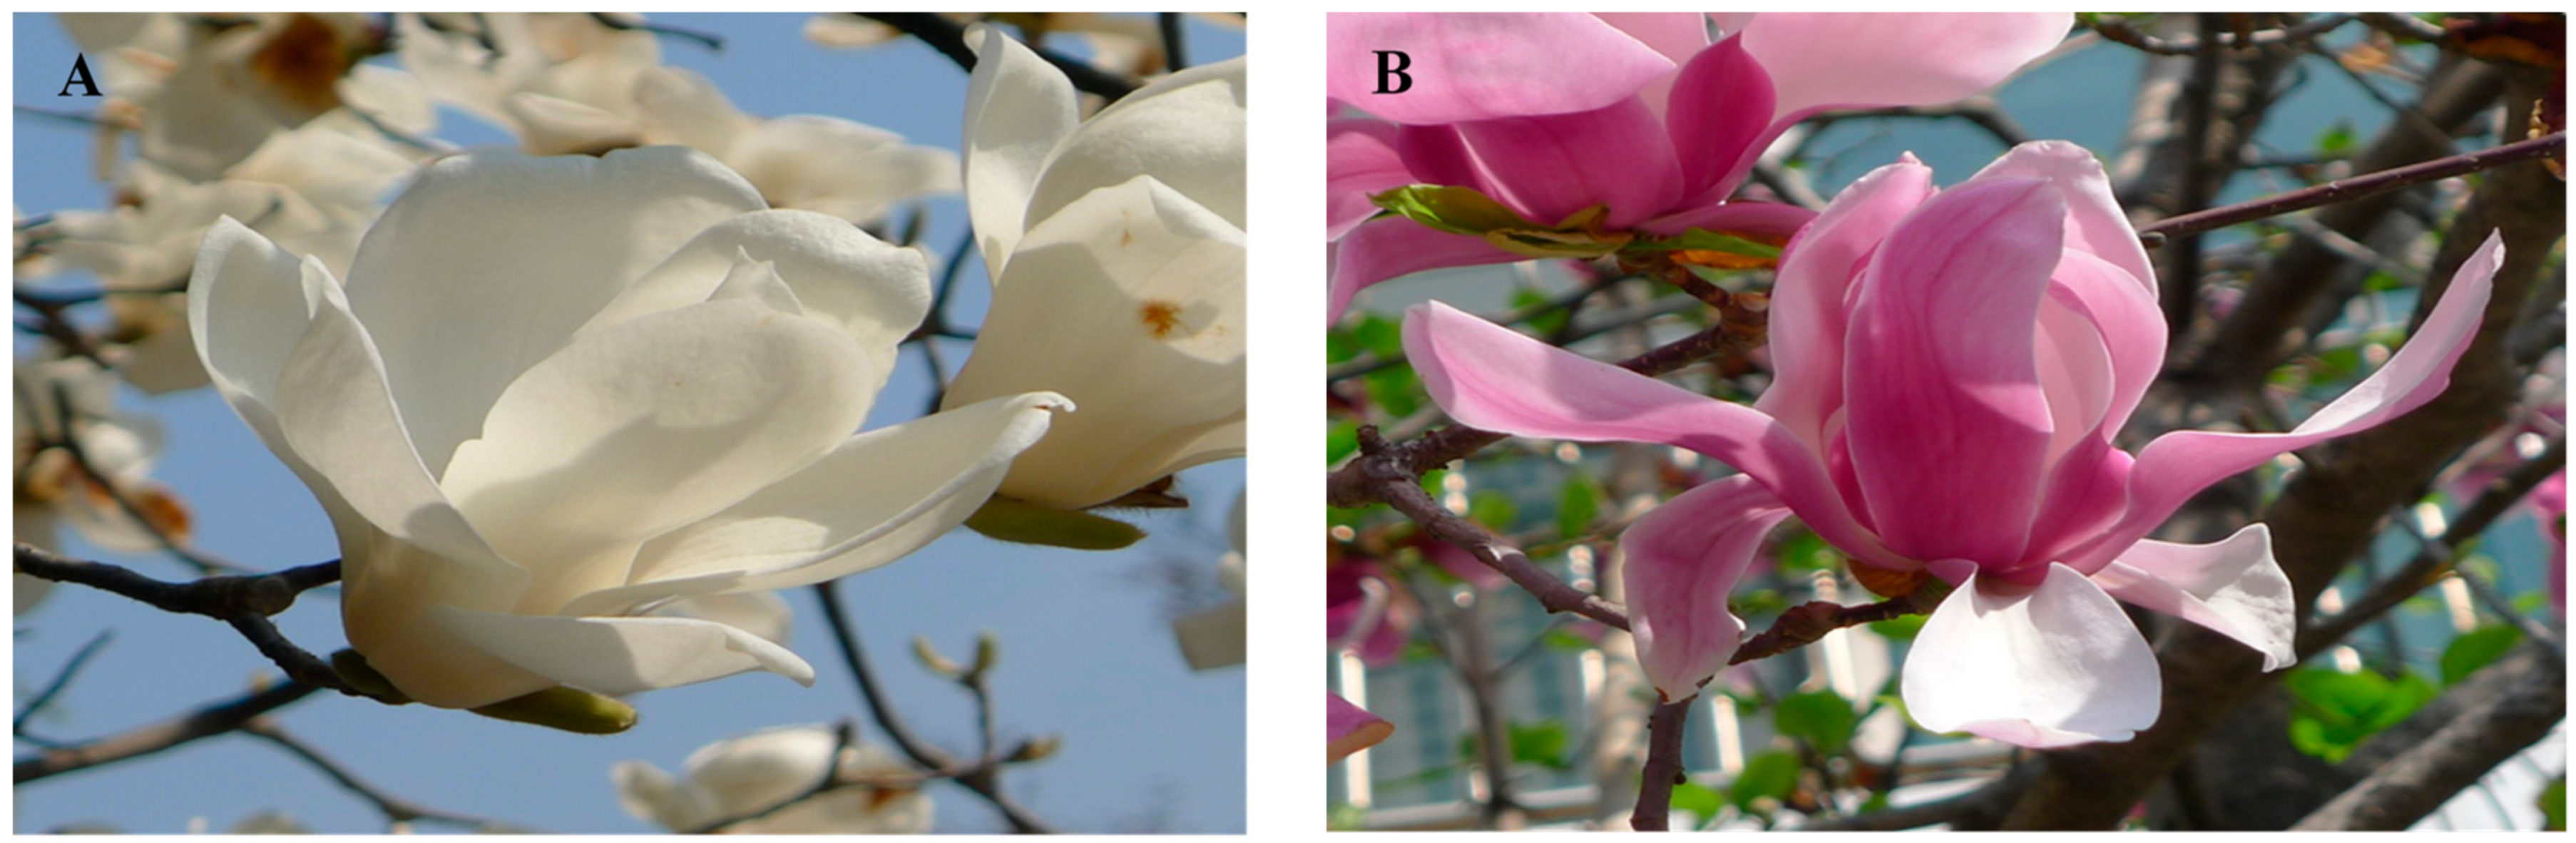 Molecules Free Full Text Analysis Of Metabolites In White Flowers Of Magnolia Denudata Desr And Violet Flowers Of Magnolia Liliiflora Desr Html